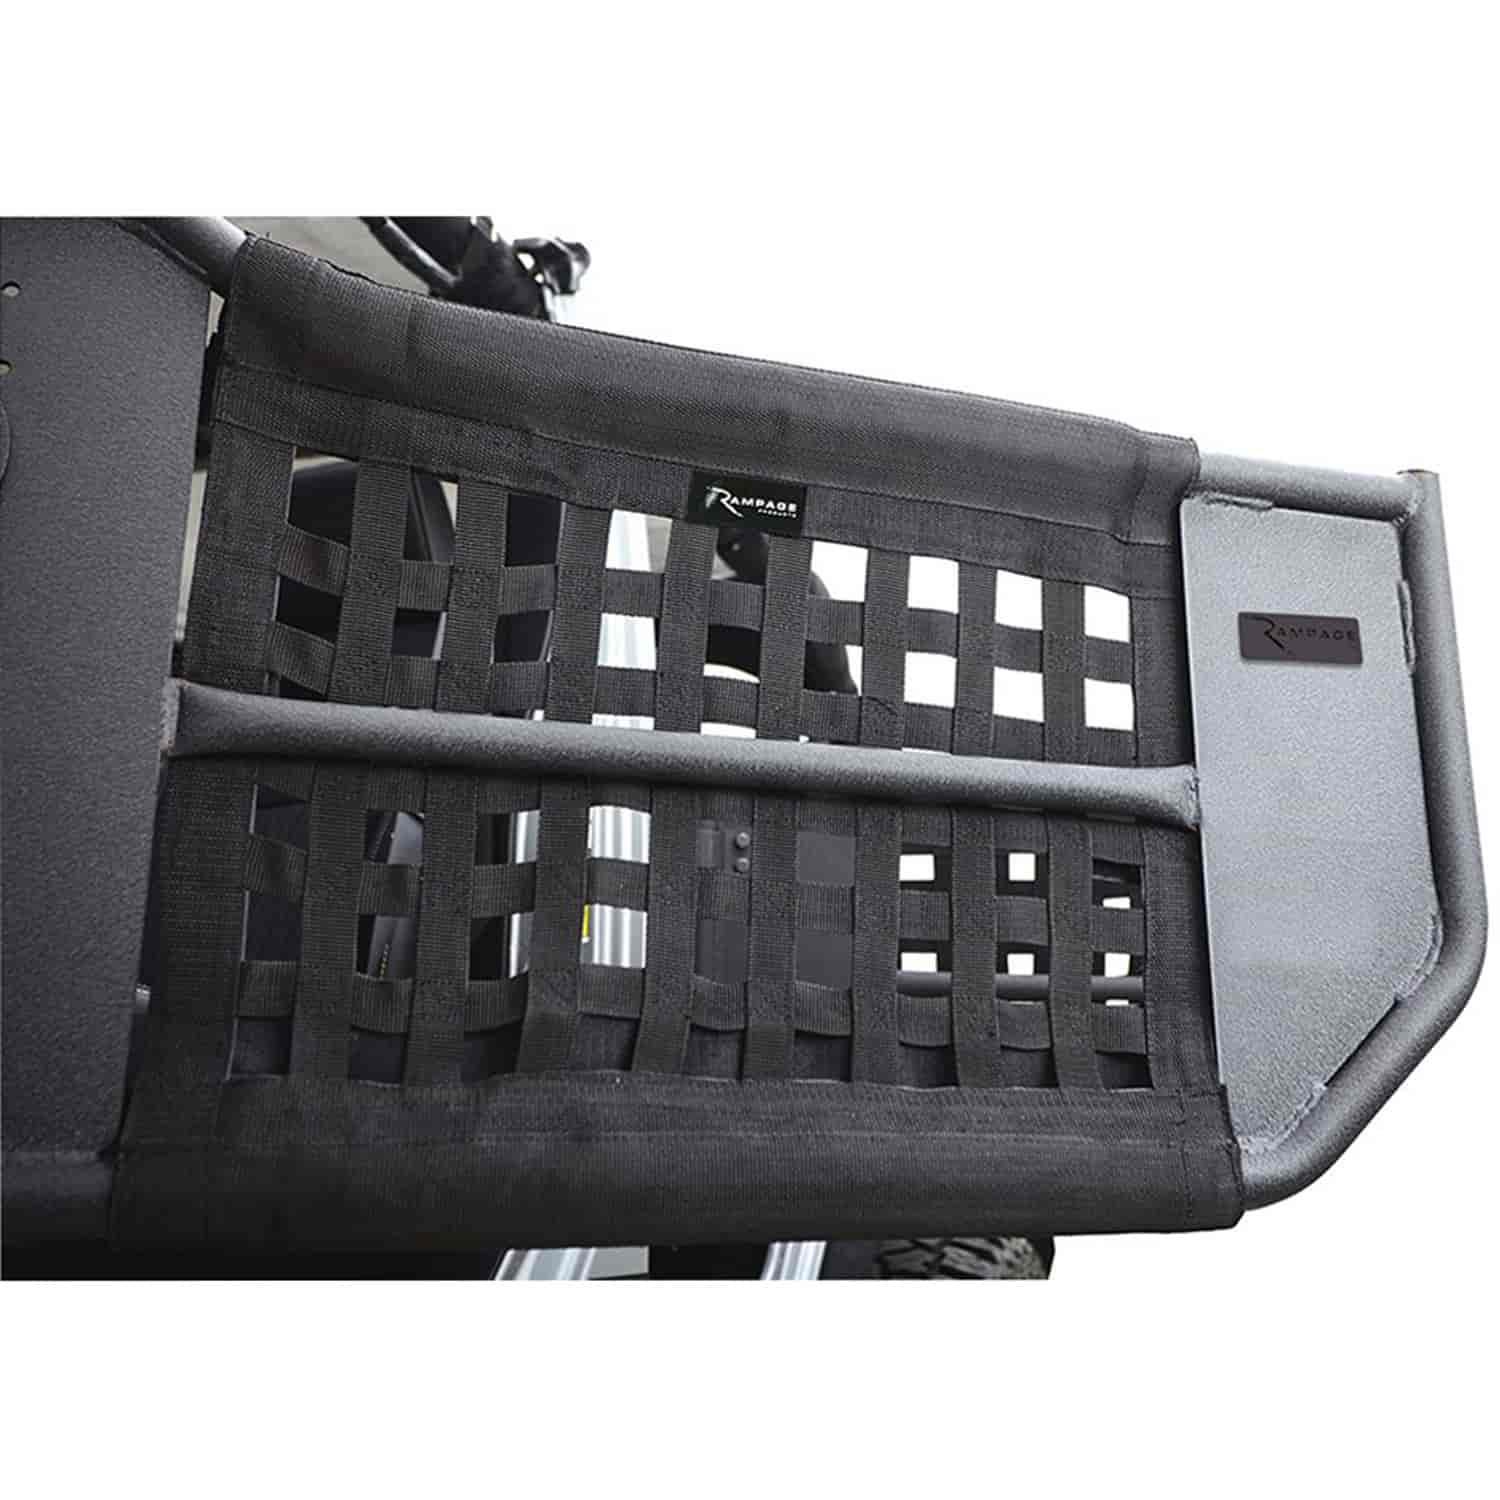 R&age 7684  sc 1 st  Jegs & Rampage 7684: Trail Doors for 2007-2017 Jeep Wrangler Unlimited 4 ...